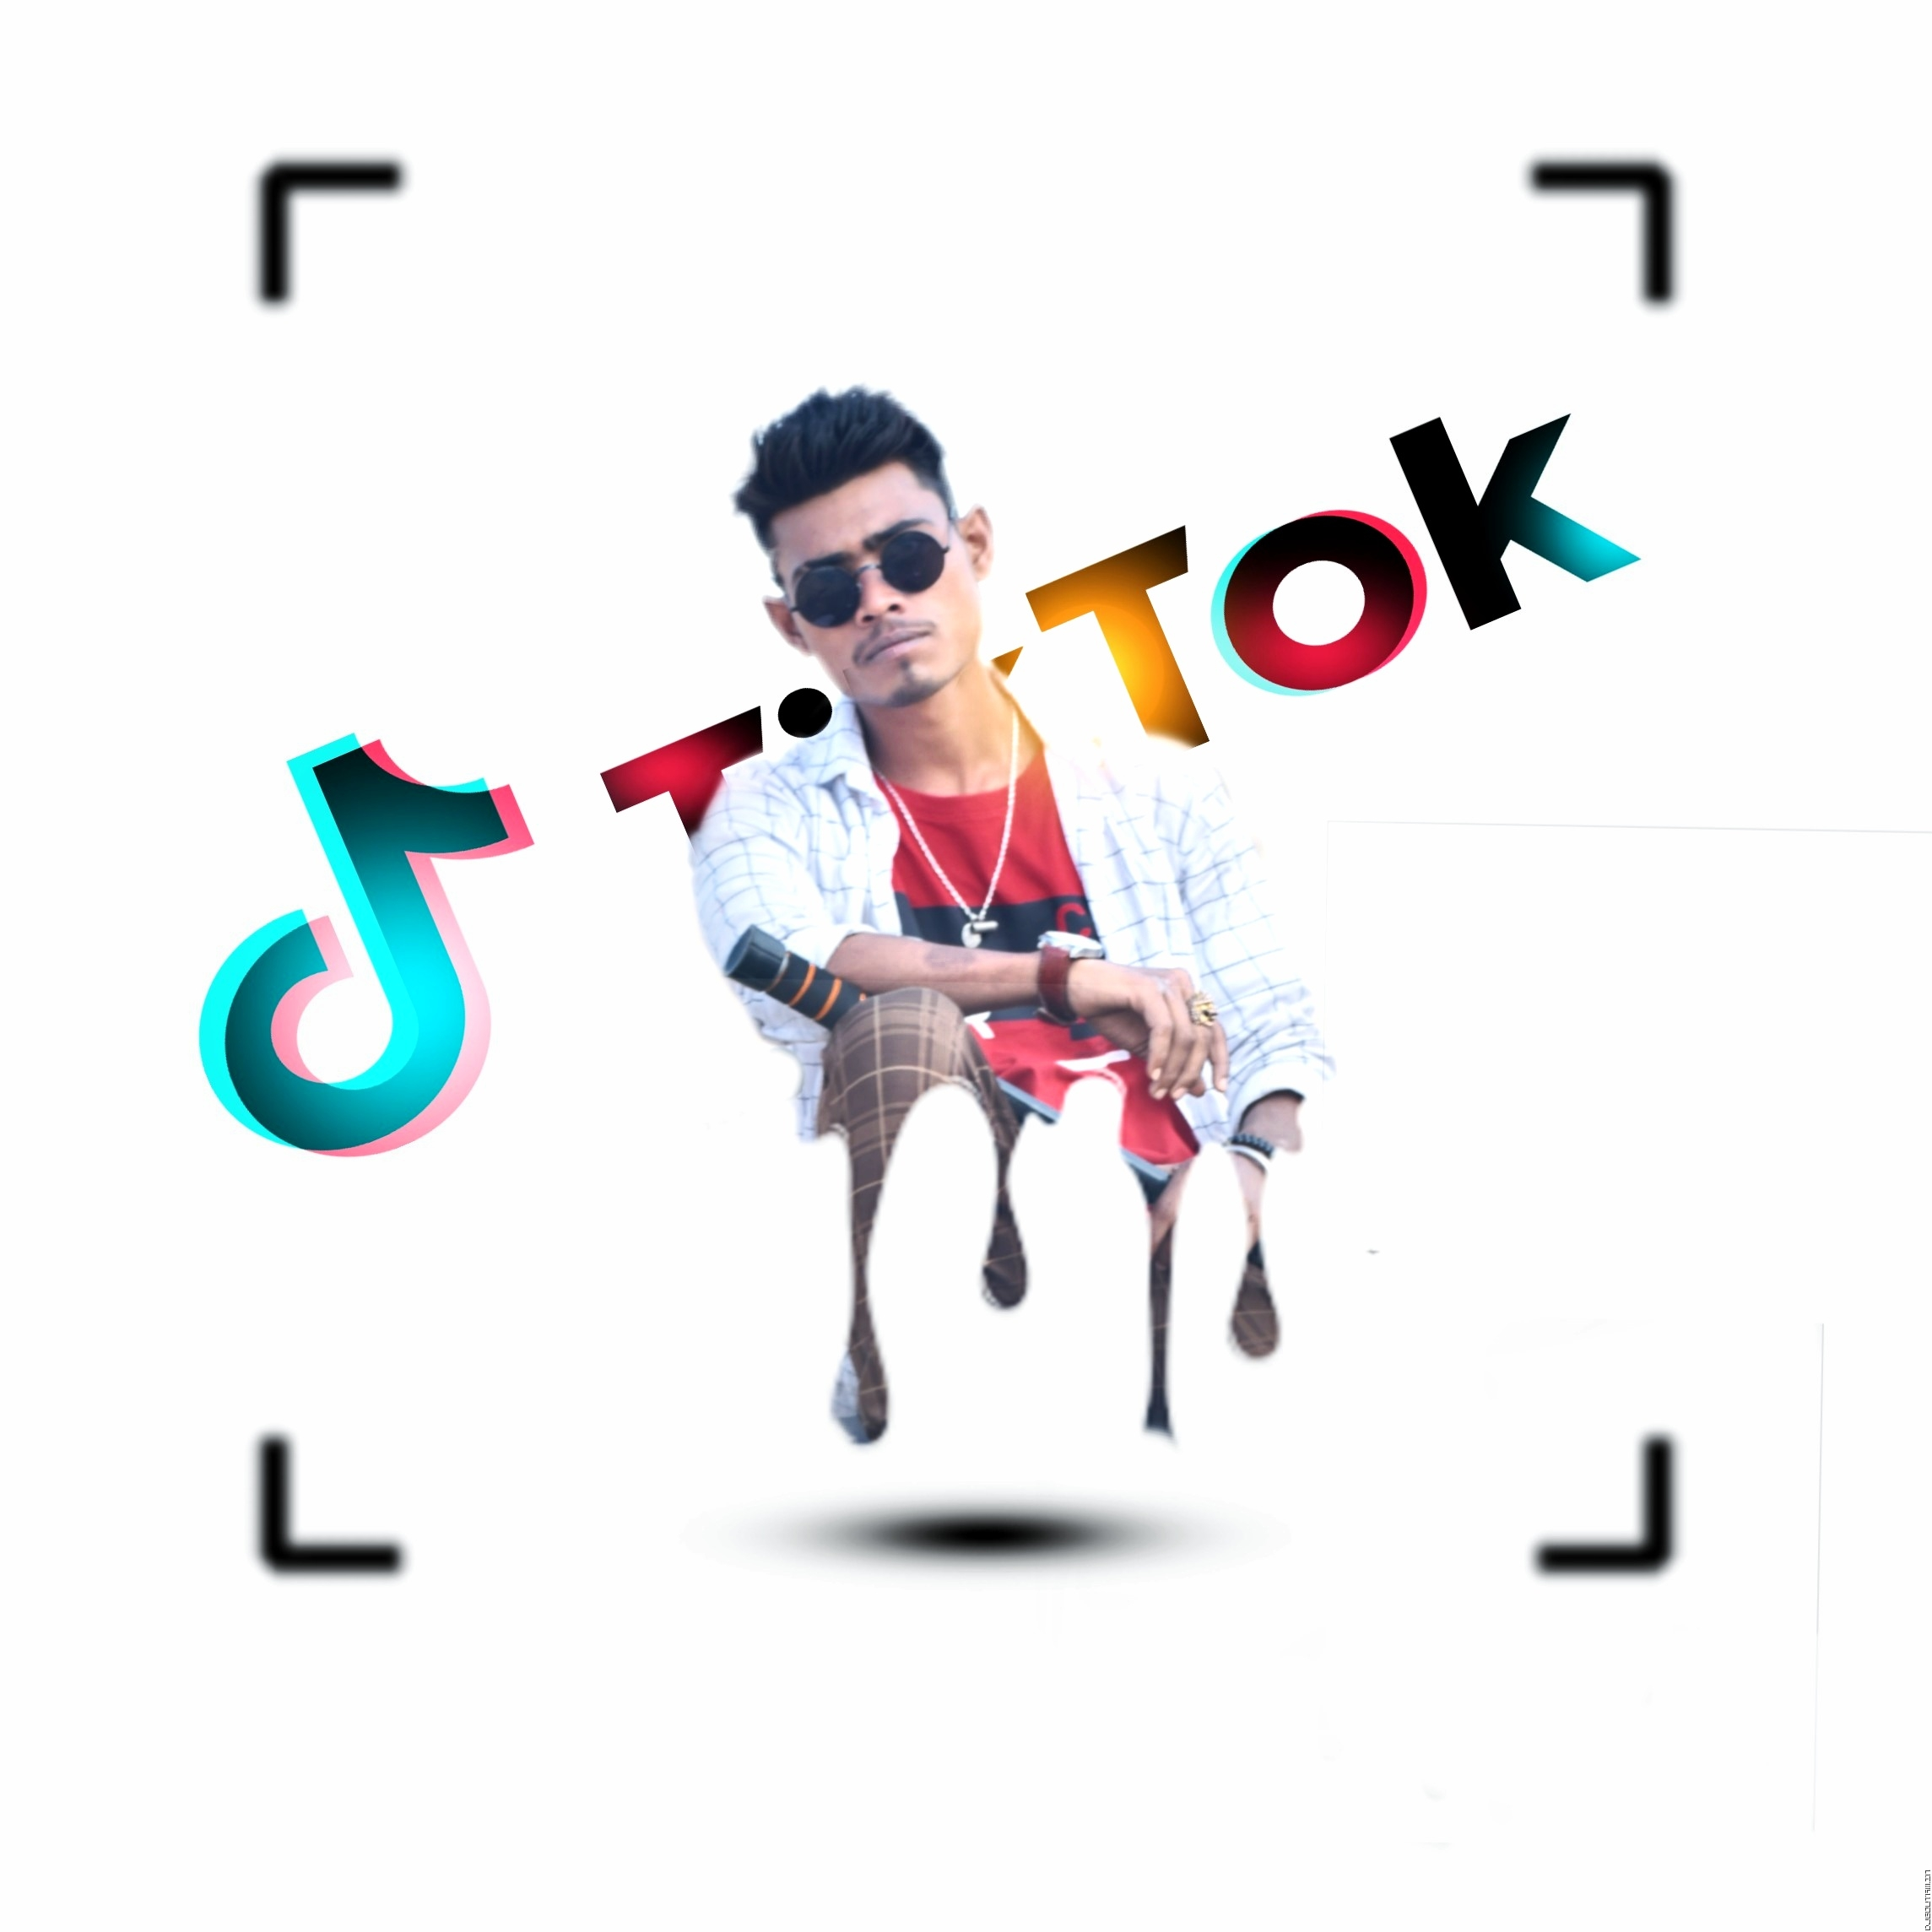 Kumar Mukesh Rock TikTok Star Comedy Song_-Dehati  Matal Dance Mix-_Dj RaHul Dhanbad.mp3